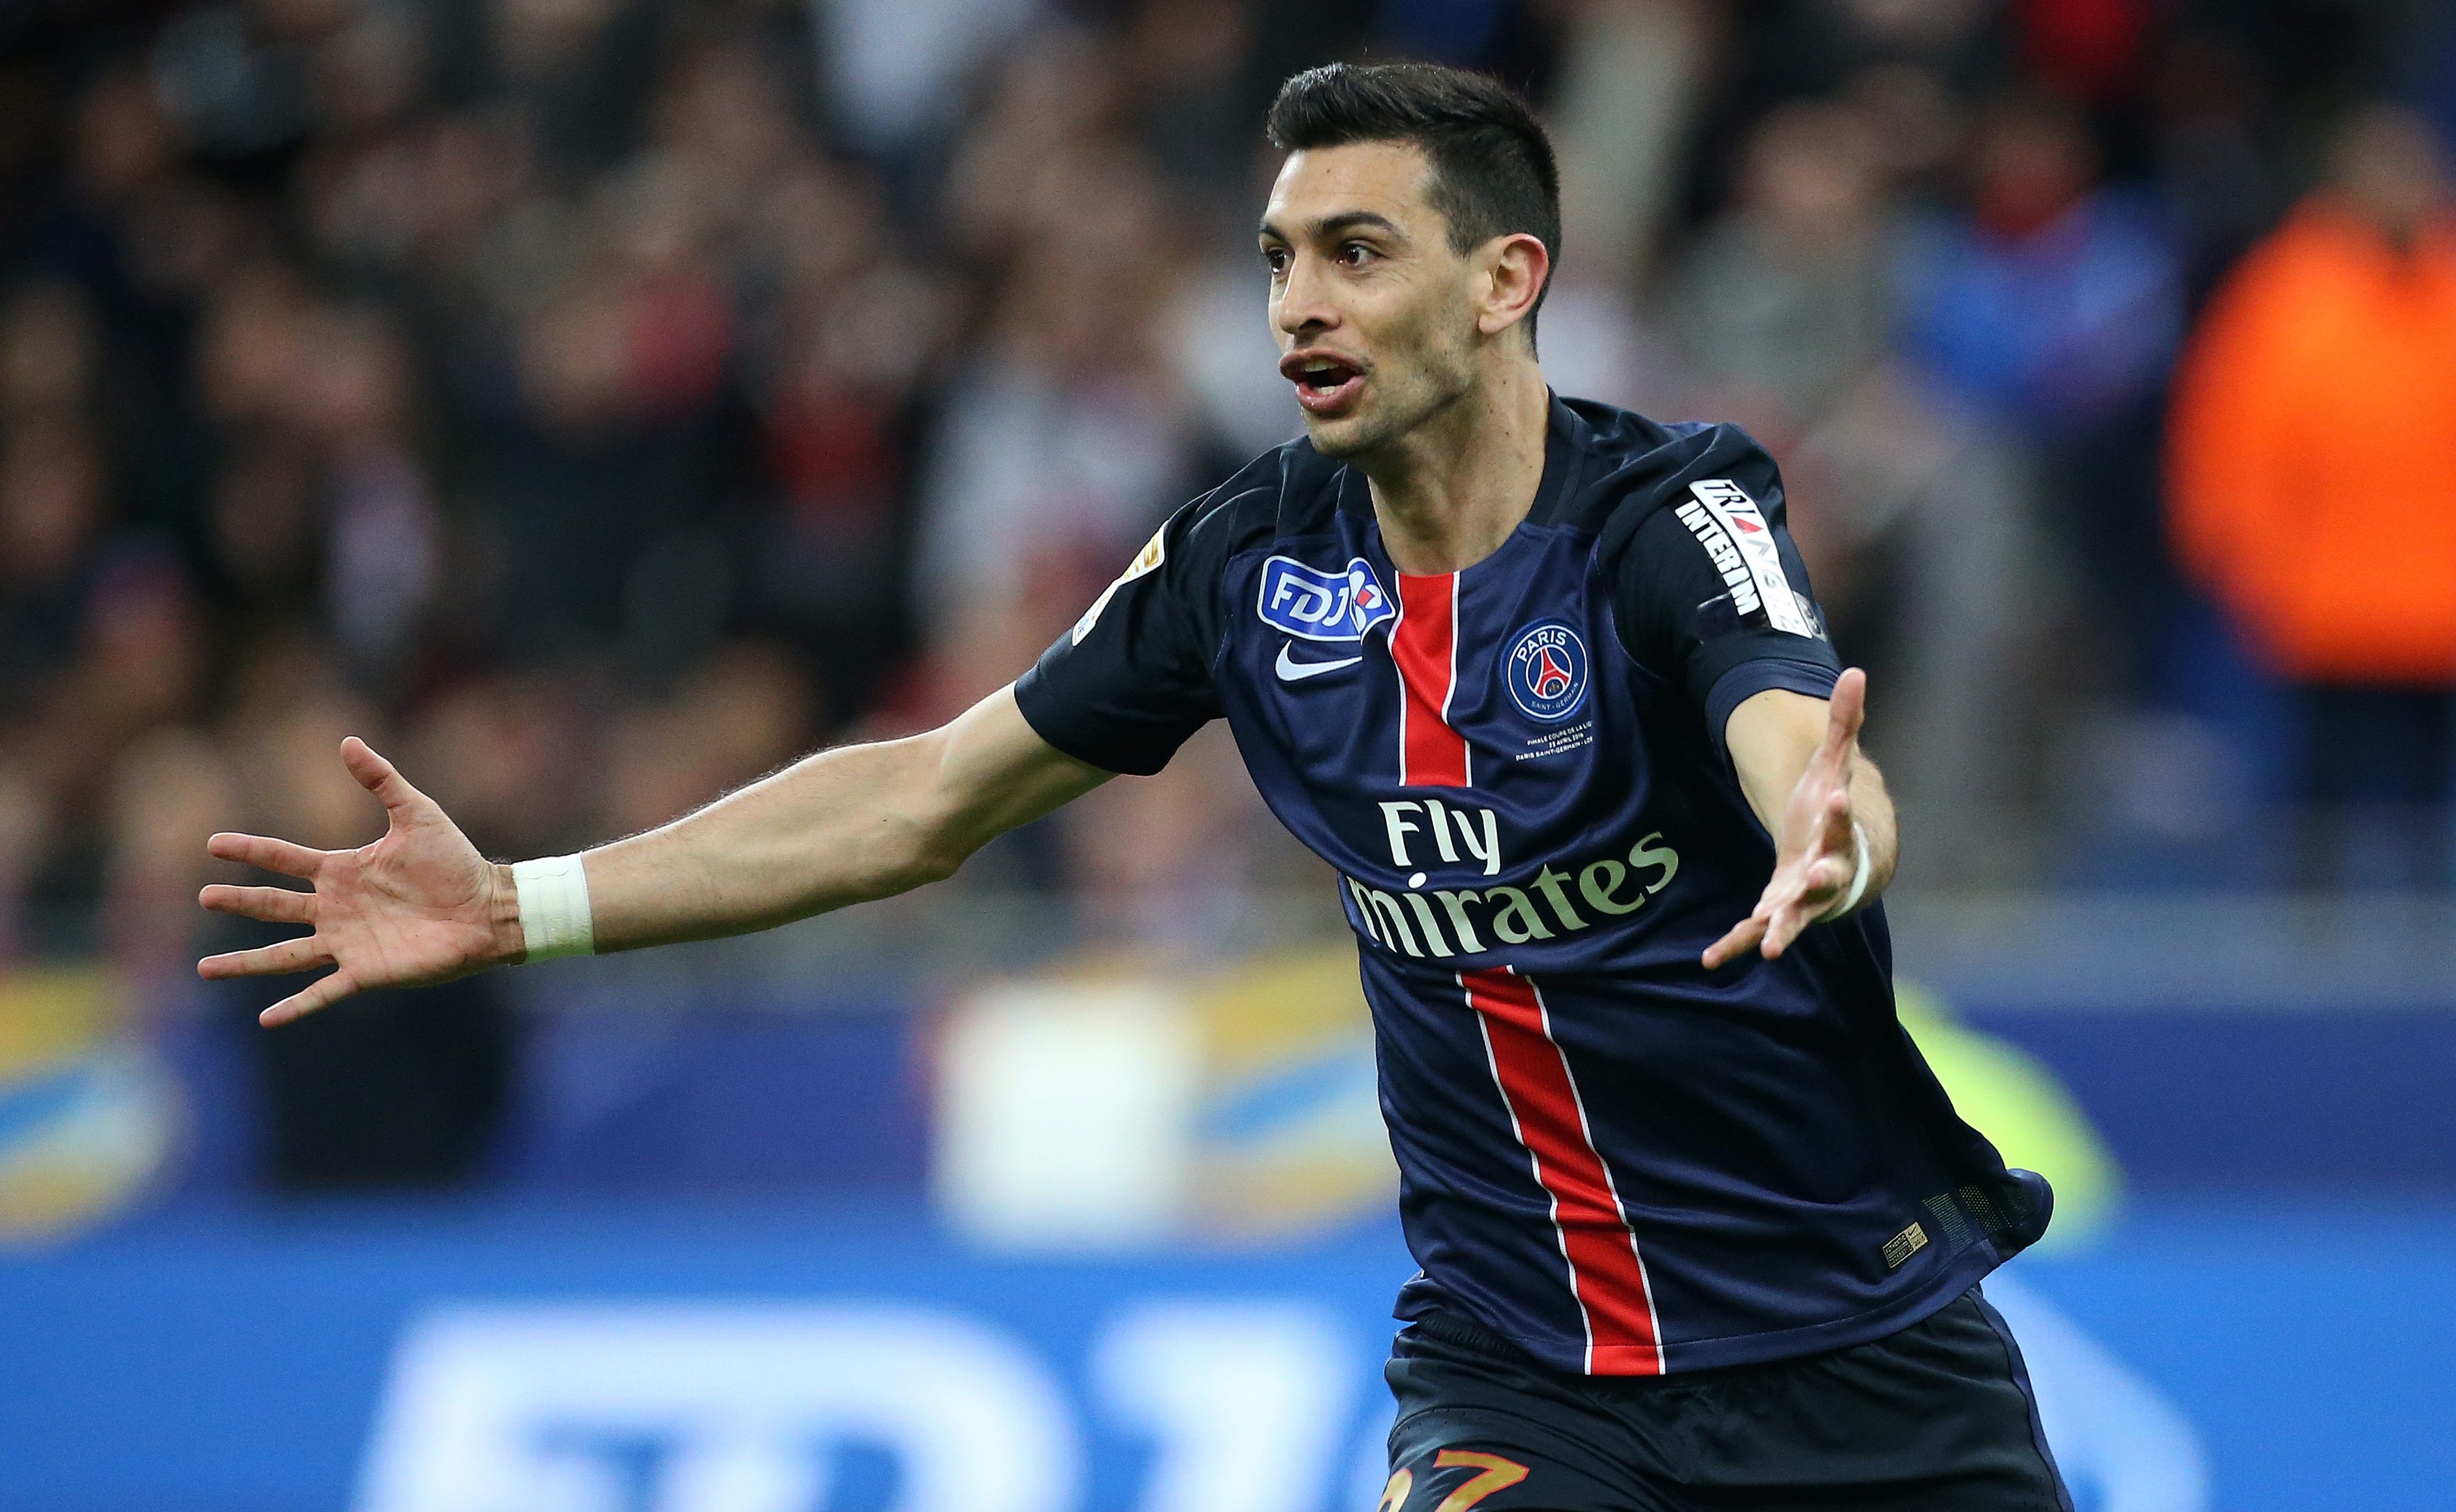 Liverpool tell Paris Saint-Germain Jurgen Klopp wants Javier Pastore transfer